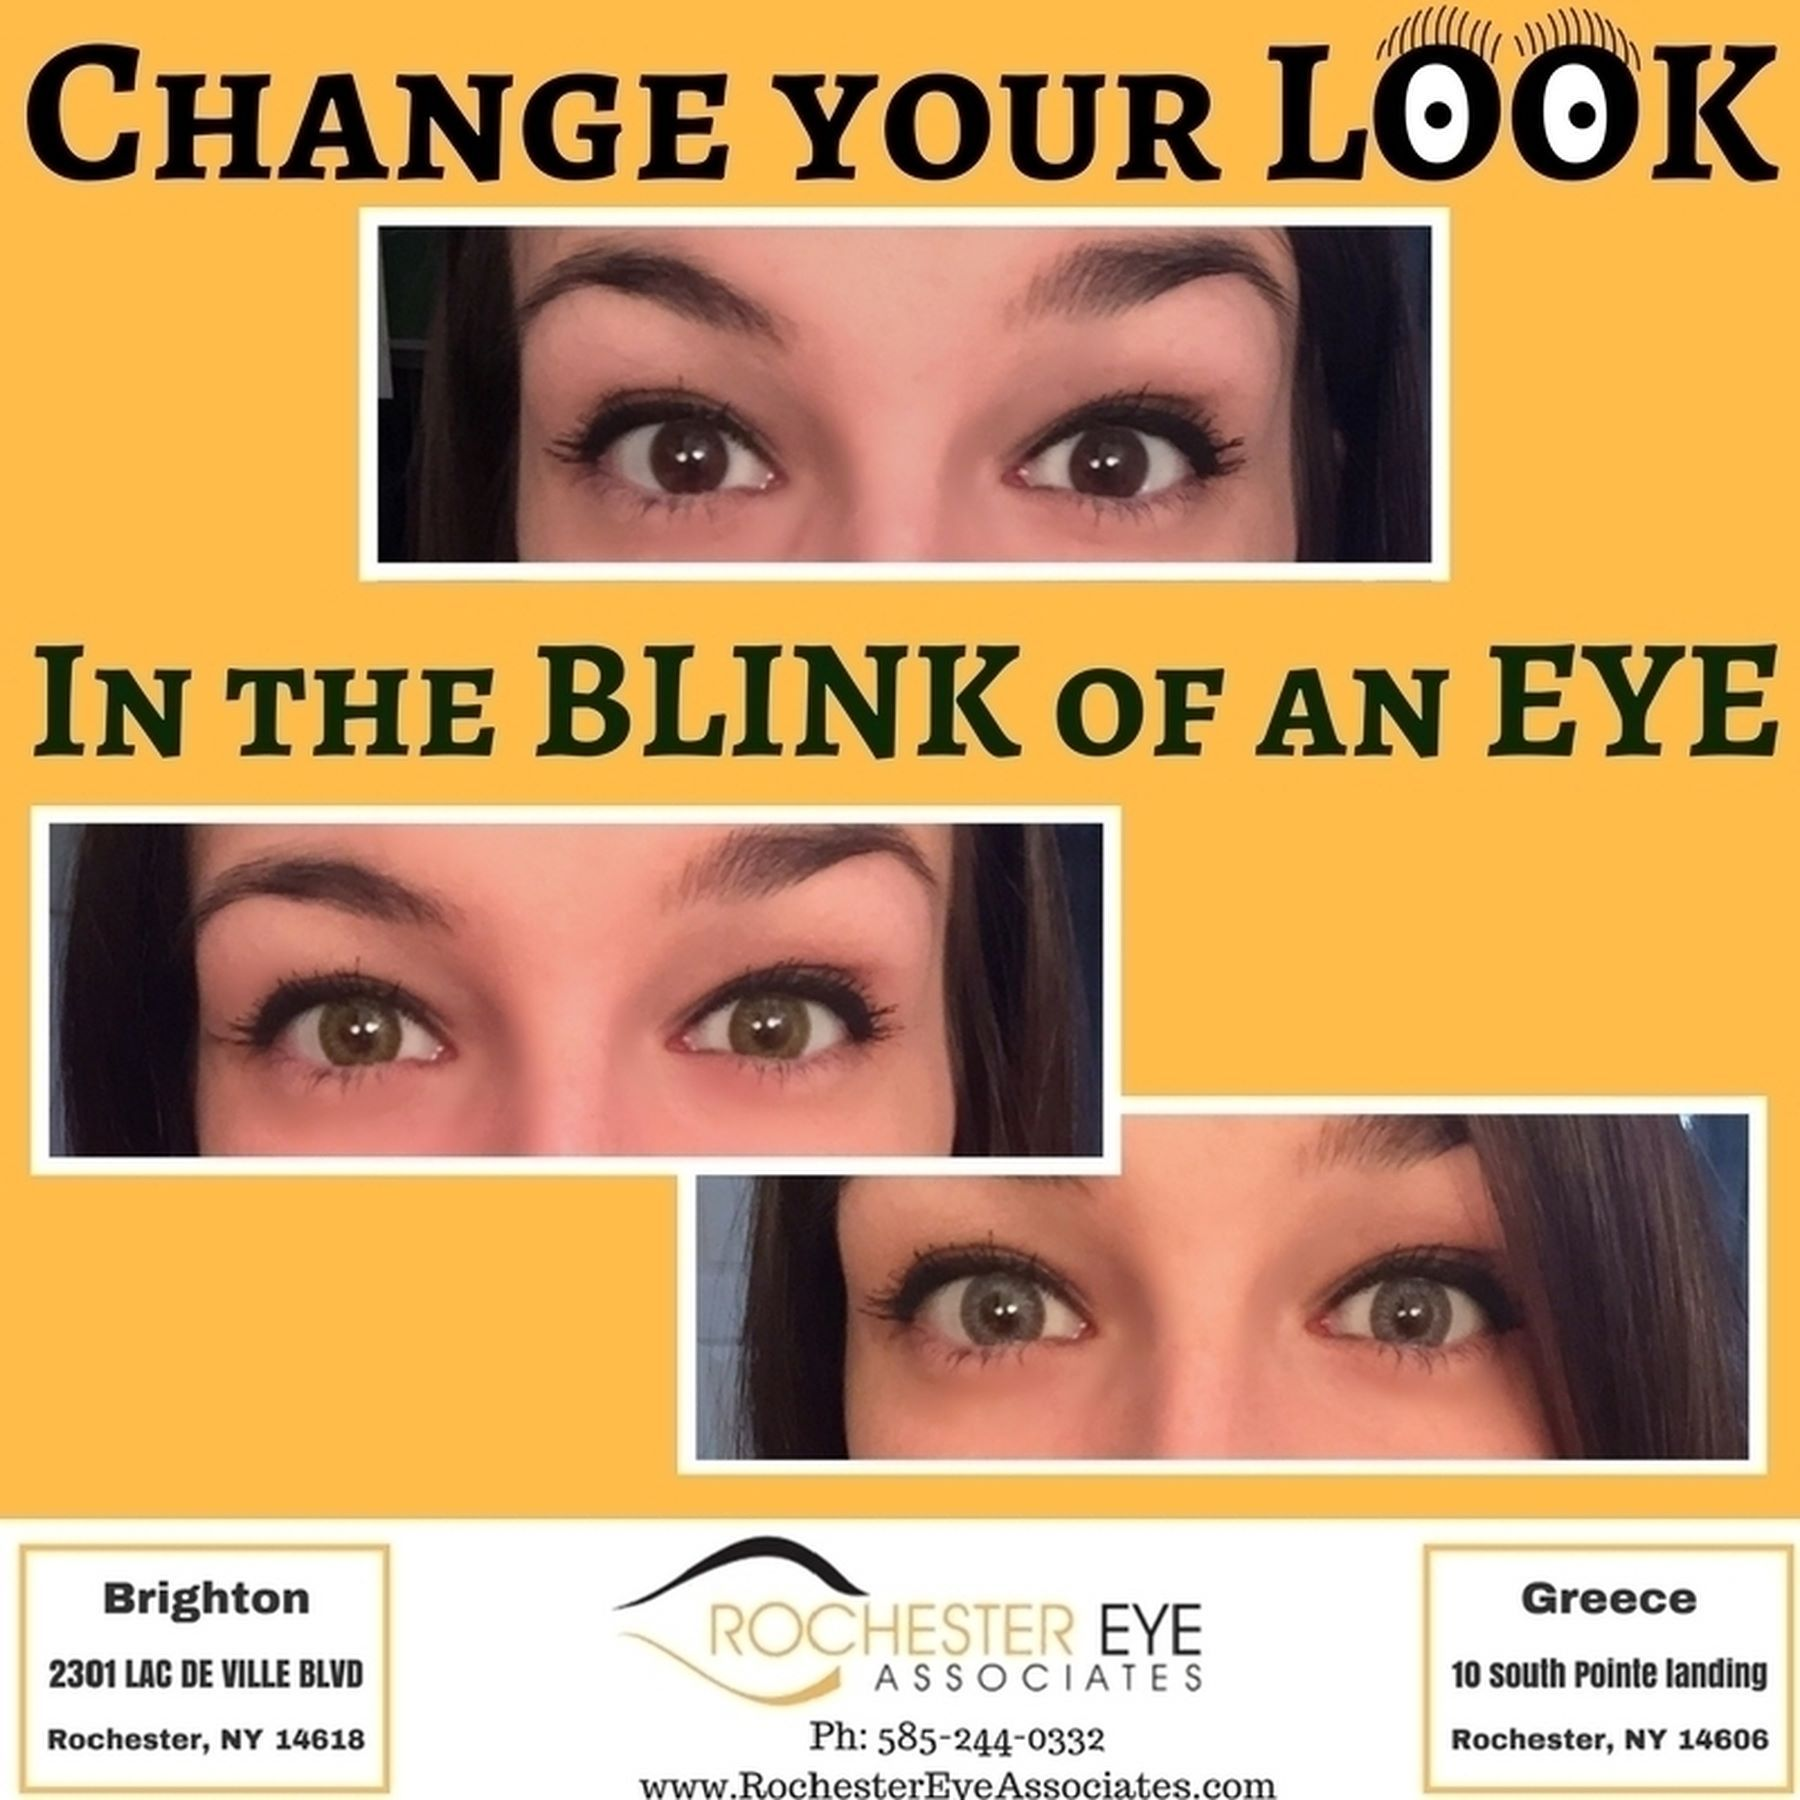 Change your look in the blink of an eye with colored